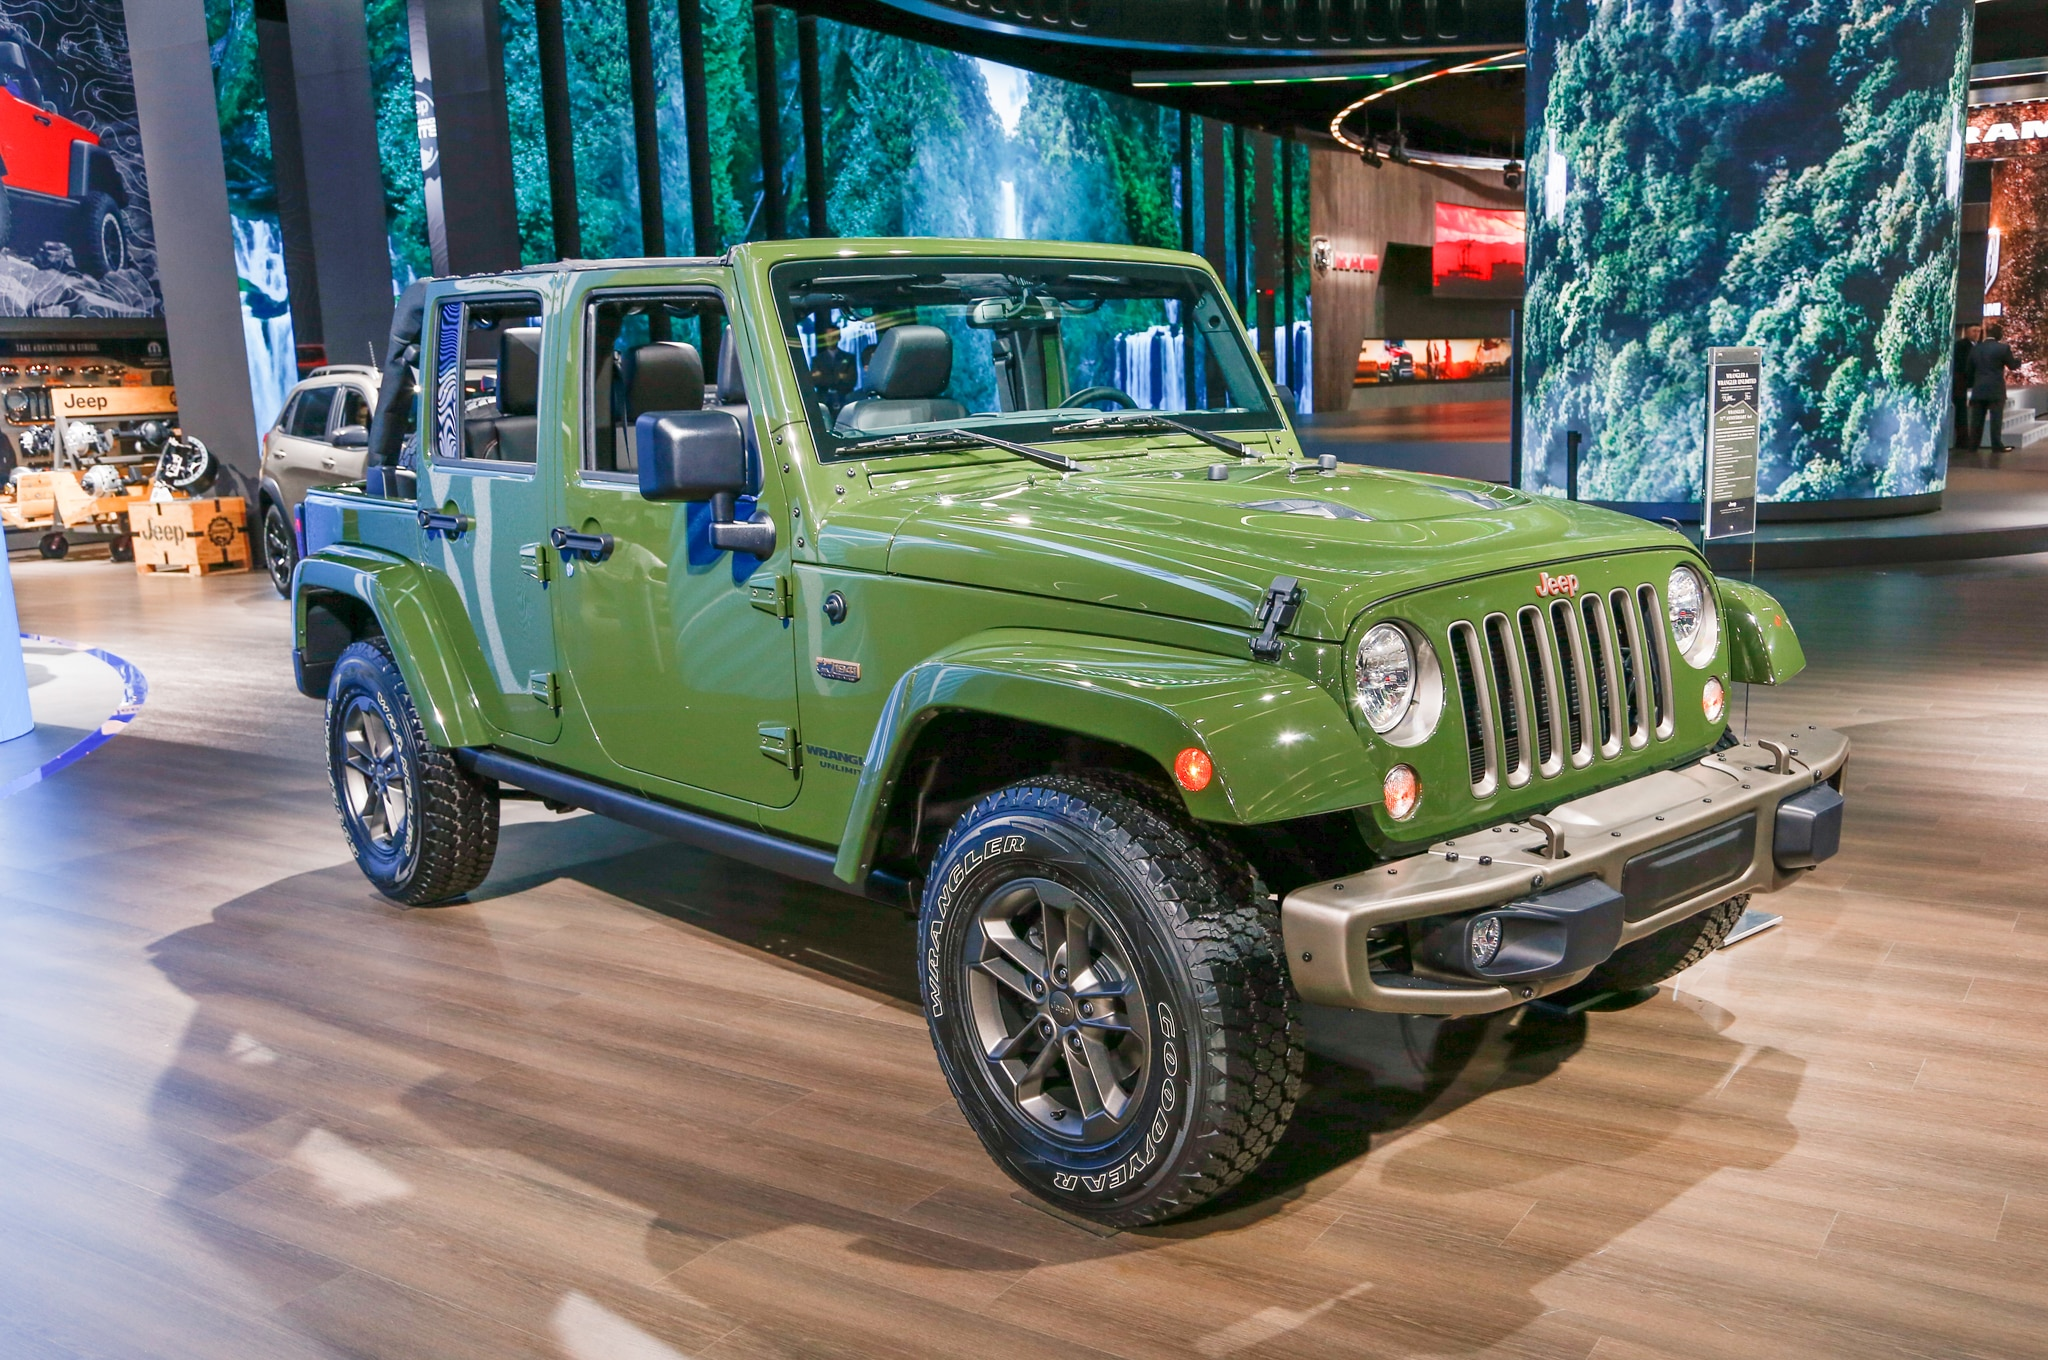 edition diesel to wrangler unlimited h hybrid come jeep well anniversary before news